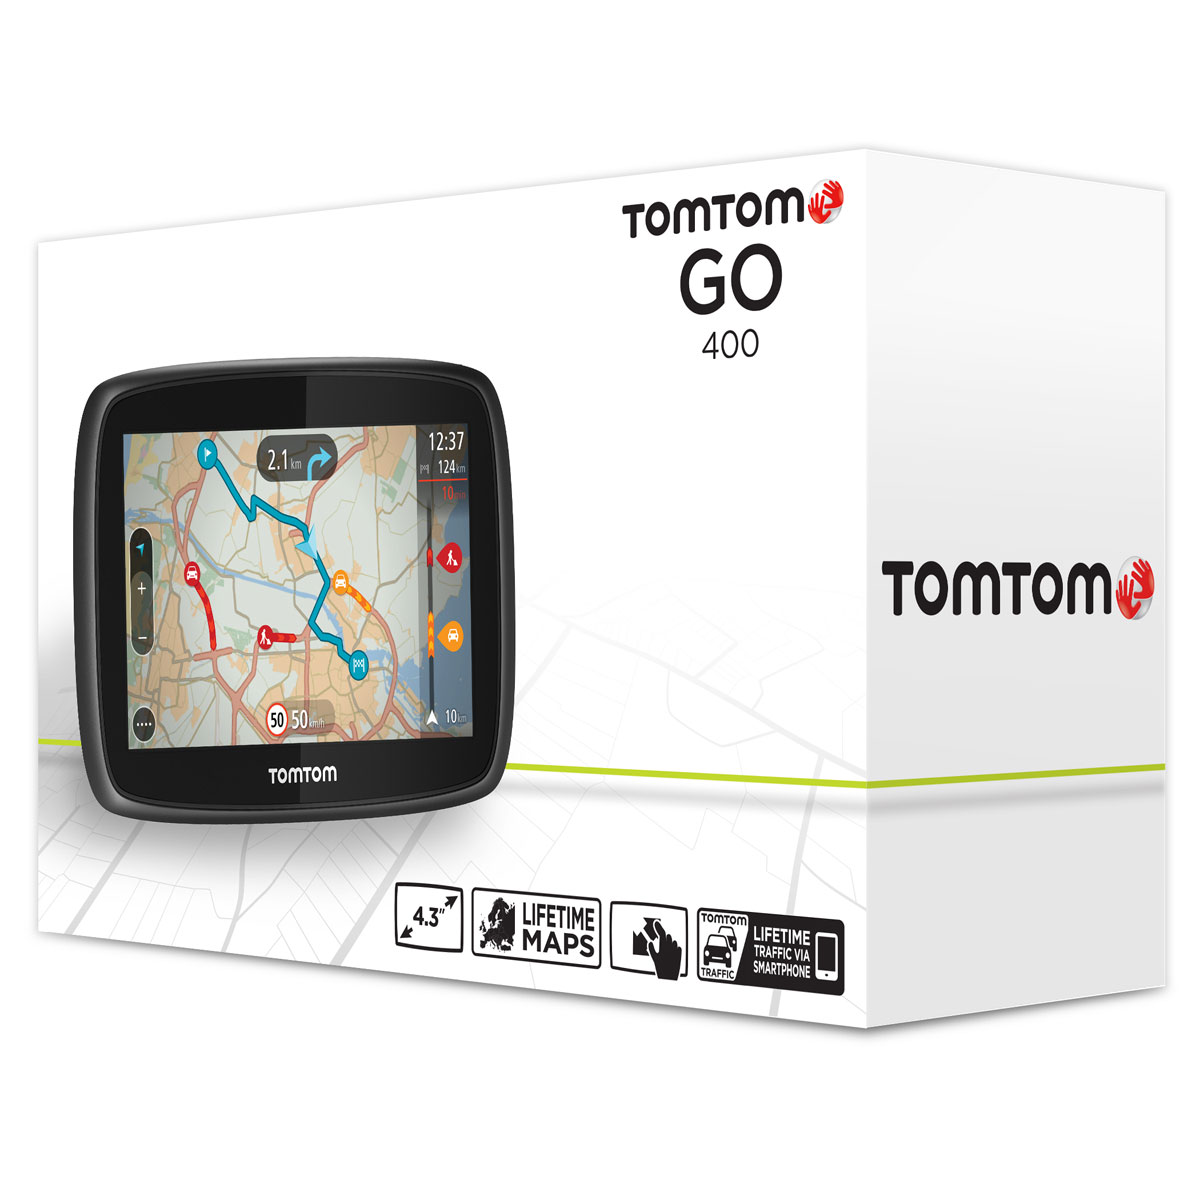 tomtom go 400 gps tomtom sur. Black Bedroom Furniture Sets. Home Design Ideas